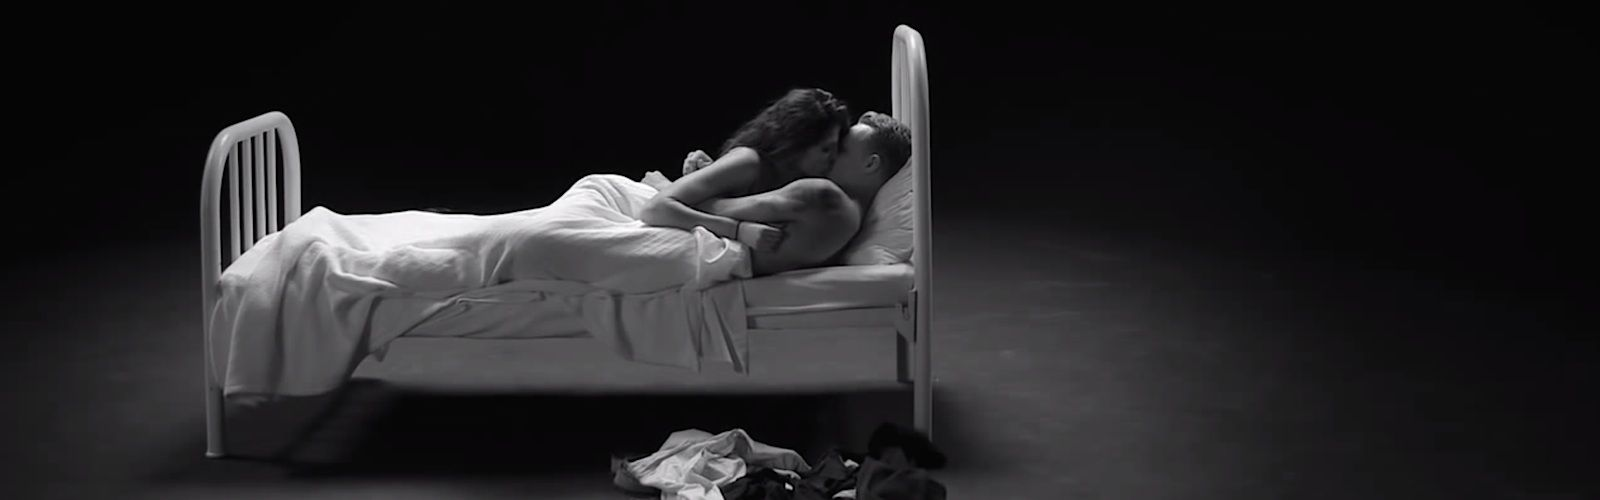 Strangers Jump Into Bed in Undress Me Video